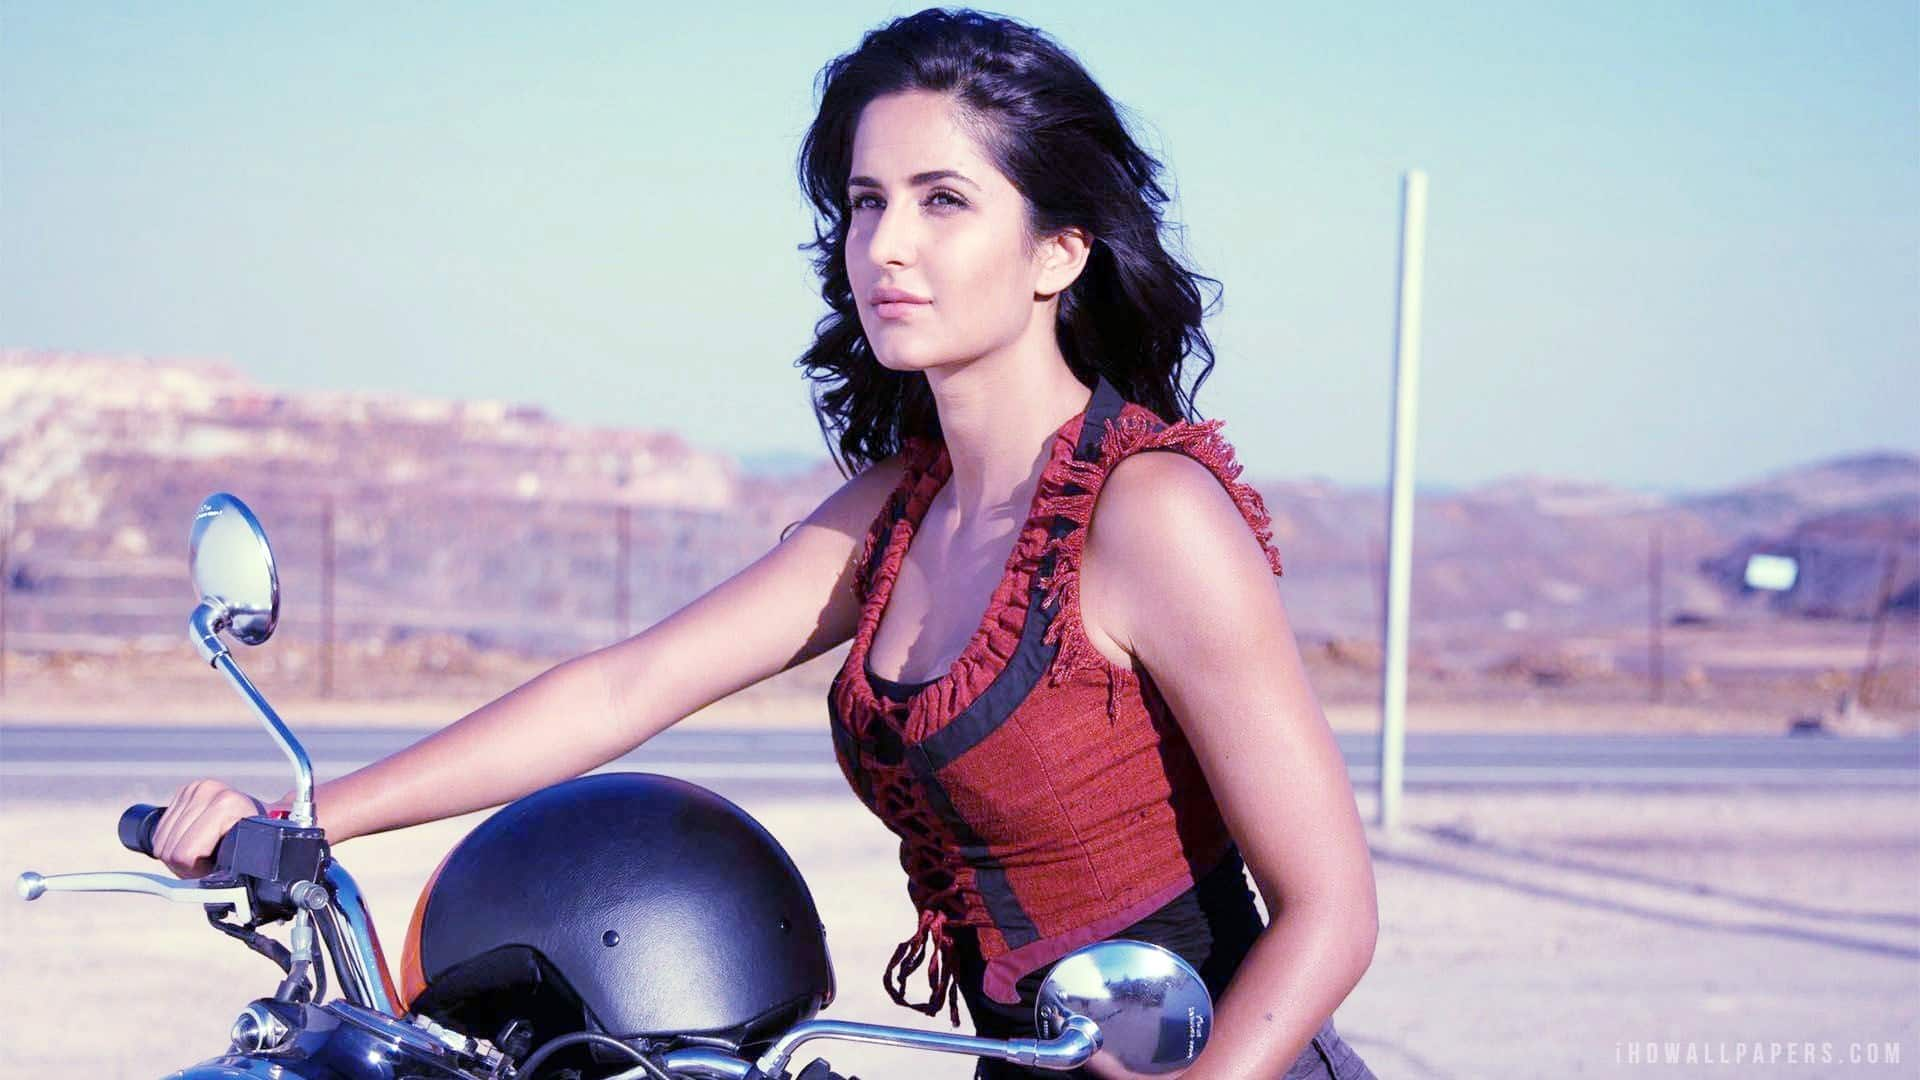 RANKED: Top 10 Box Office Grossers Of Bollywood's Very Own Barbie Katrina Kaif